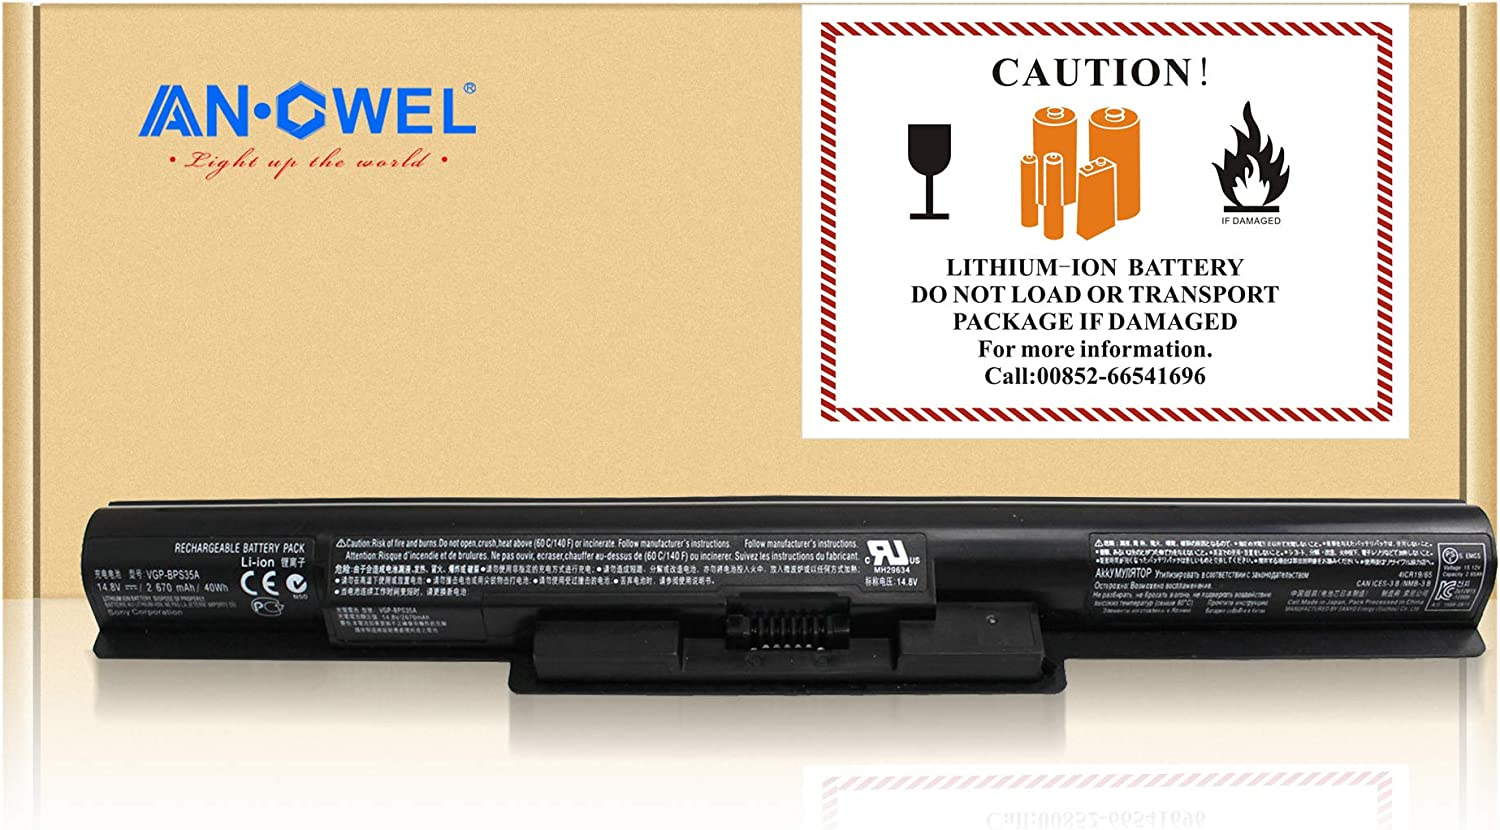 AN·GWEL 14.8V 2700mAh VGP-BPS35A Laptop Battery Sony VAIO for All items Manufacturer regenerated product free shipping